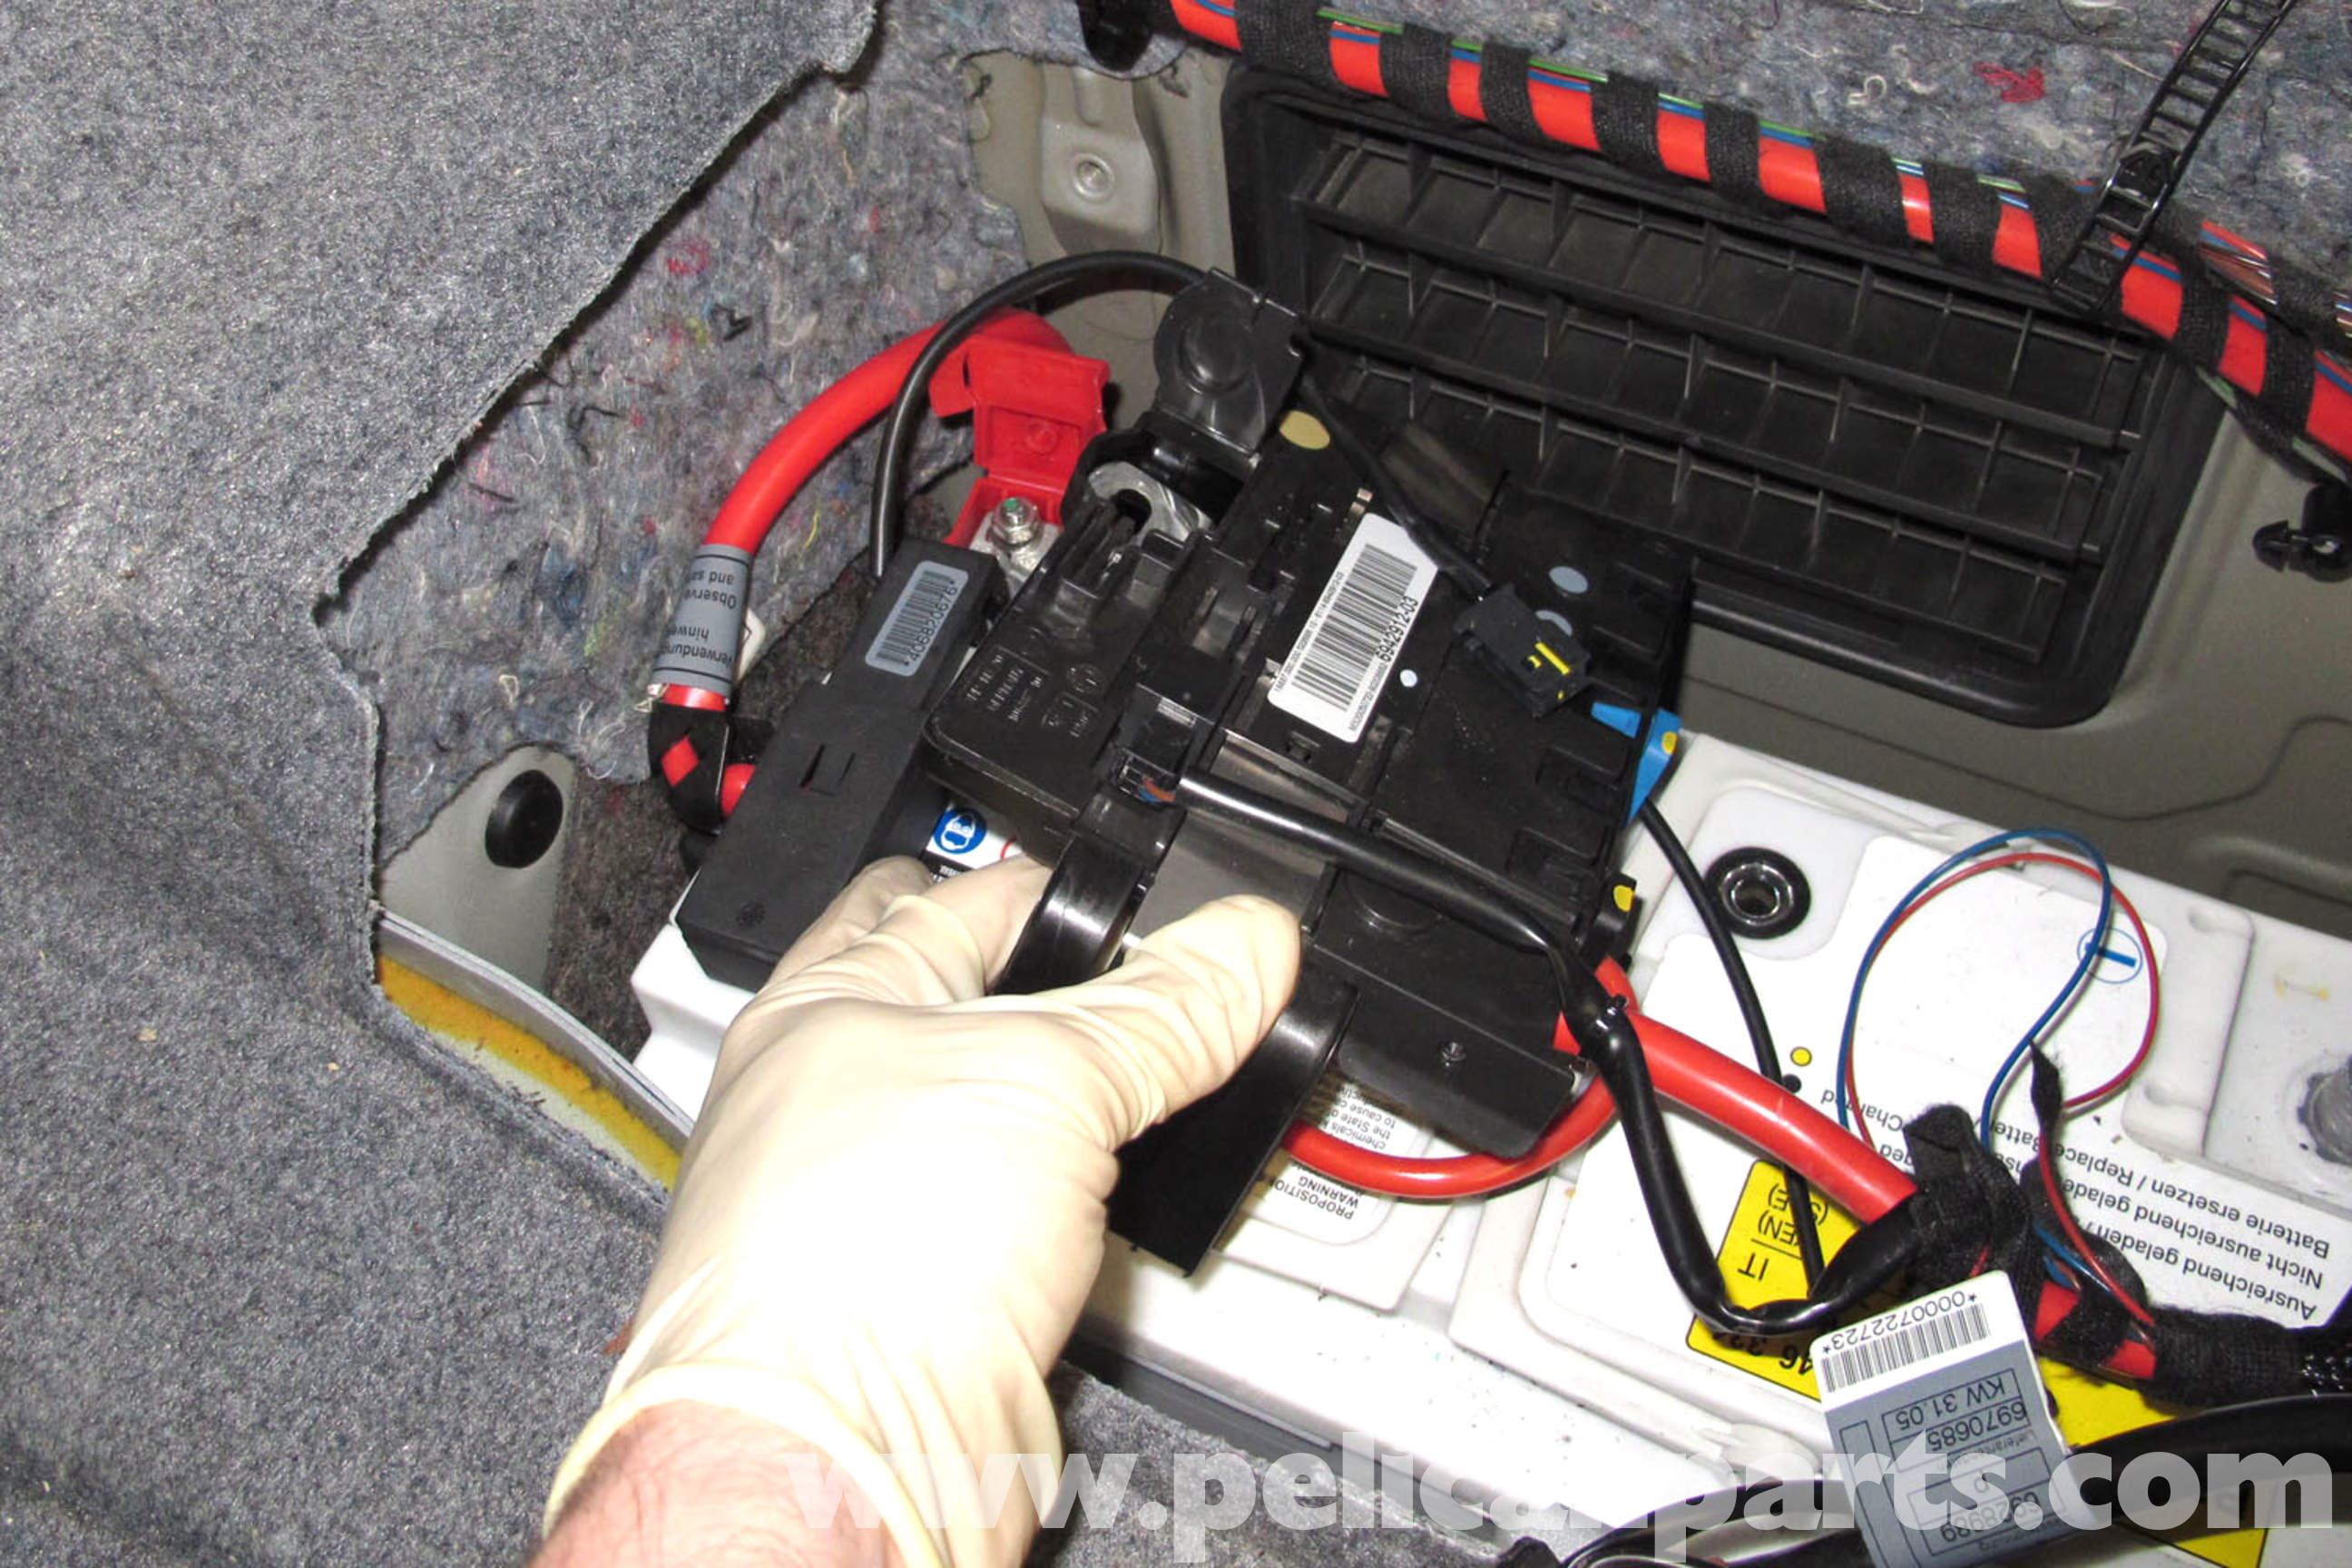 Wiring Diagram Bmw X3 furthermore 1998 Bayliner Capri Ls Fuse Box Diagram together with Info furthermore Bmw 325i Fuel Pump Relay Location E7badfa7fb91712d likewise Nissan Nv200 Van Dimensions. on bmw 328i fuse box map